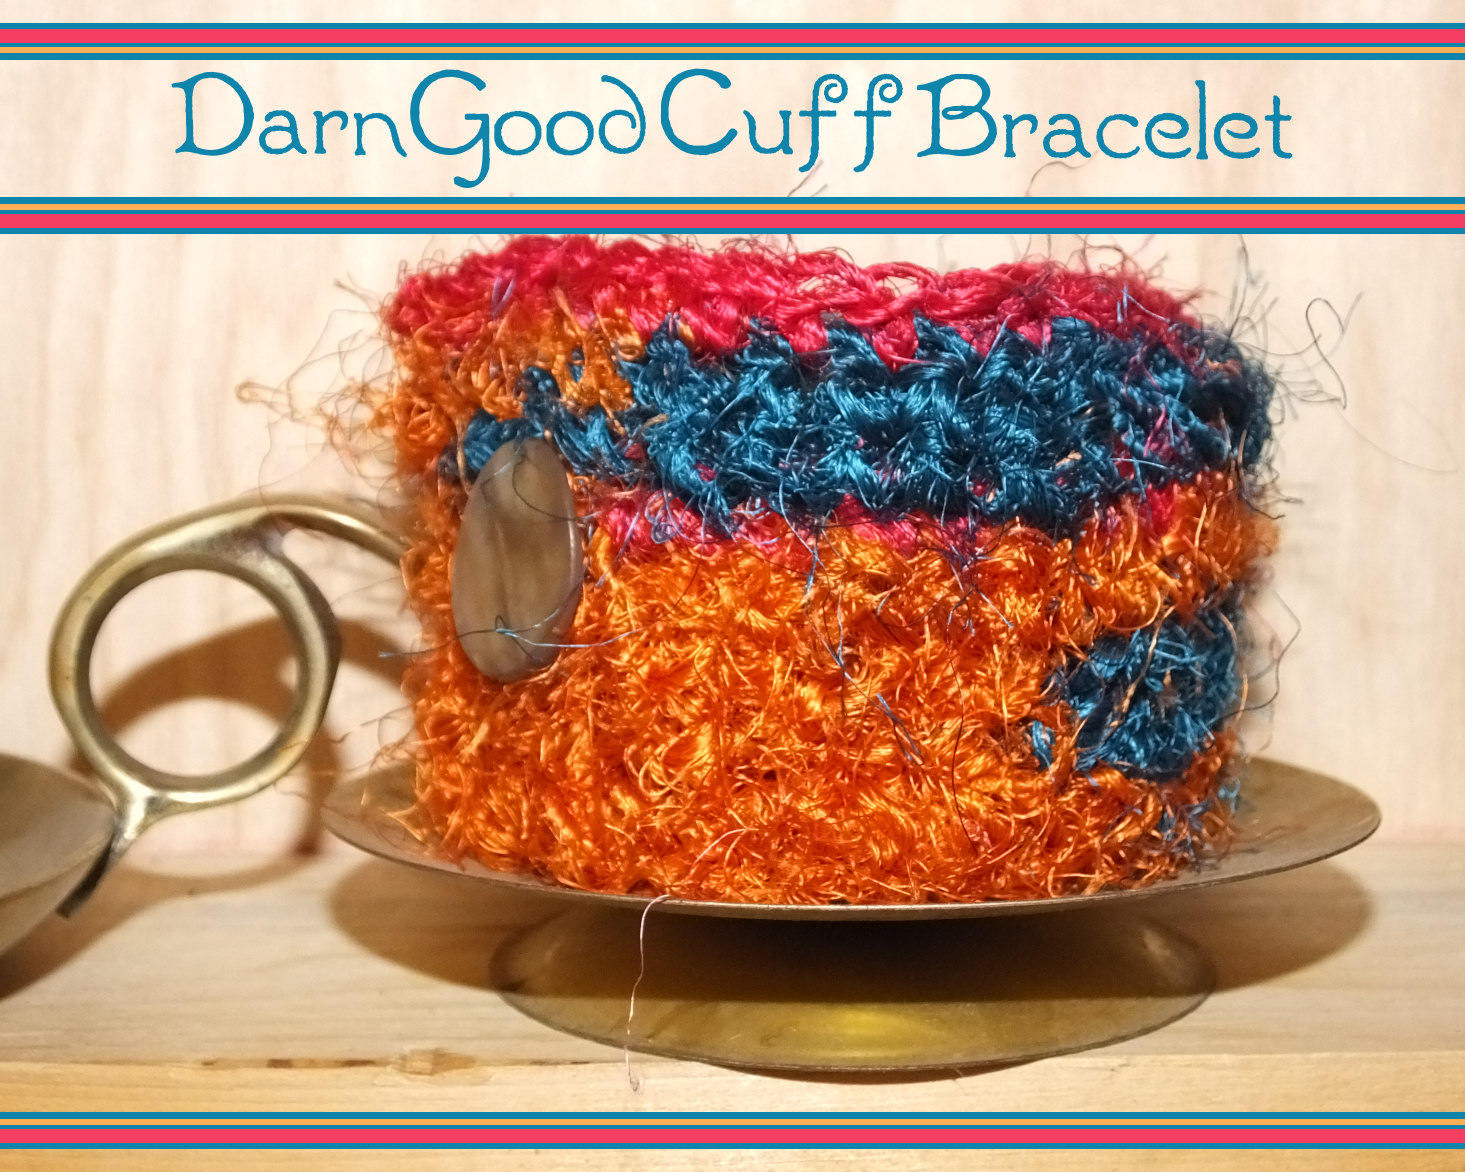 Darn Good Cuff Bracelet- a bracelet made with recycled sari silk yarn